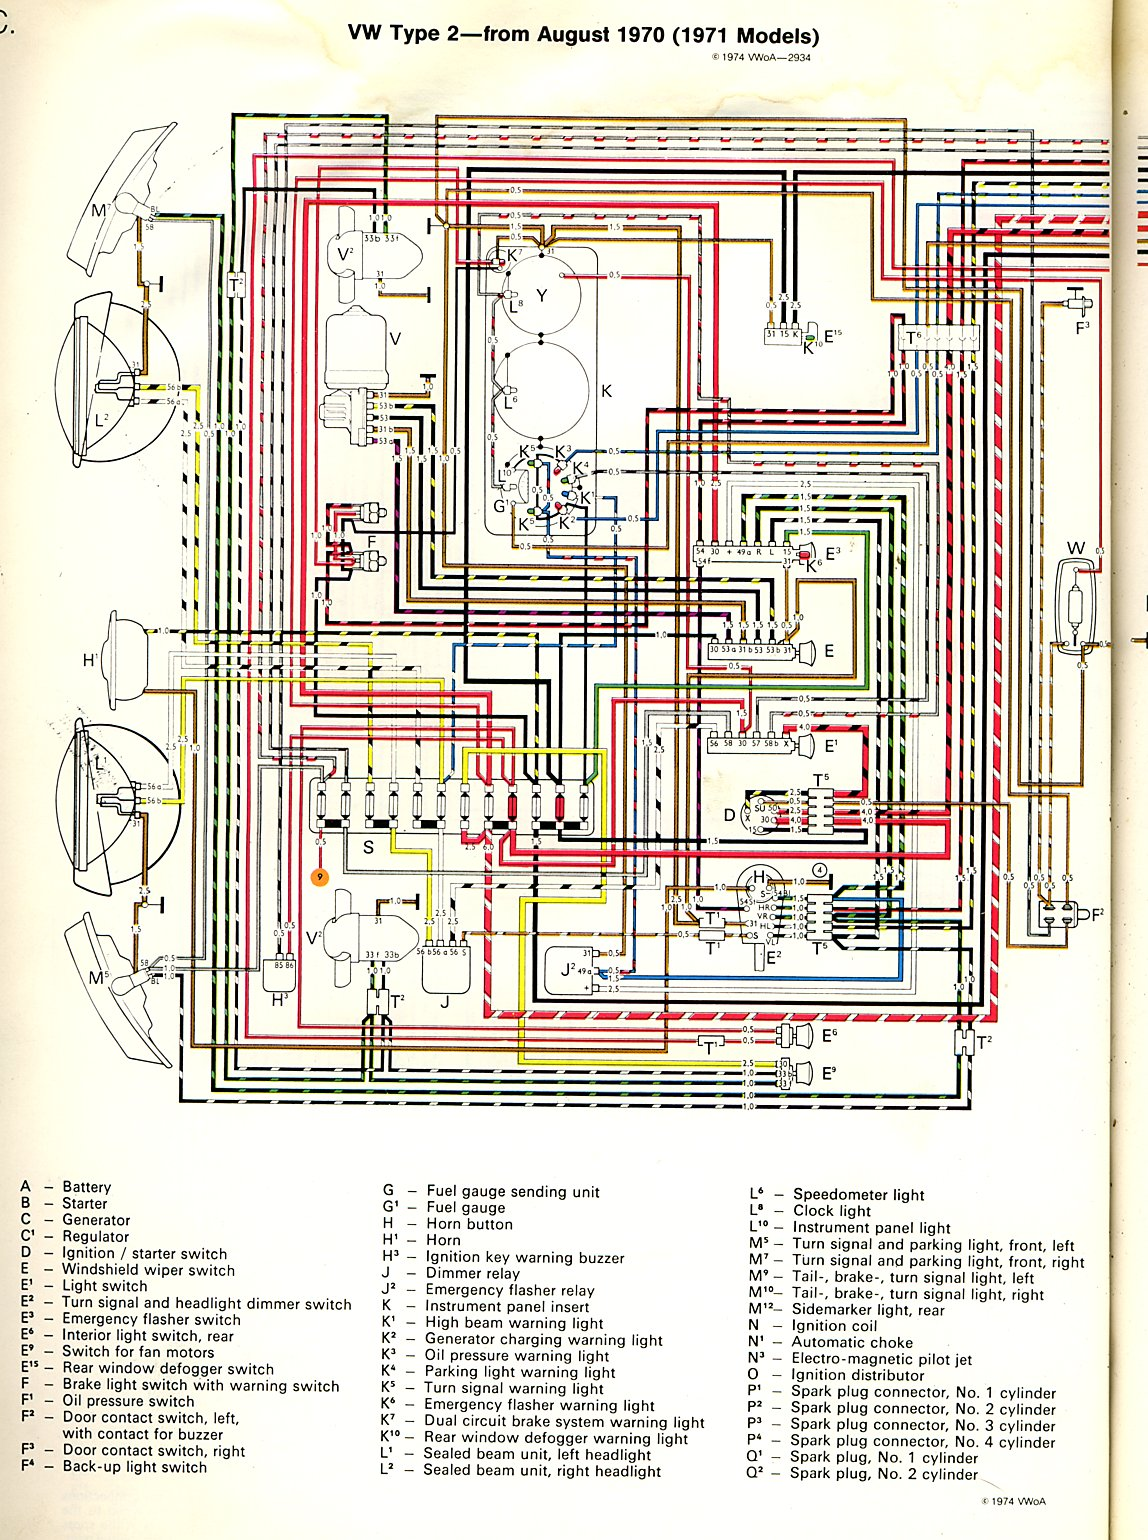 73 Ford Light Switch Wiring House Diagram Symbols 1969 Vw Bus Diagrams Enthusiast U2022 Rh Rasalibre Co Basic 2 Pole